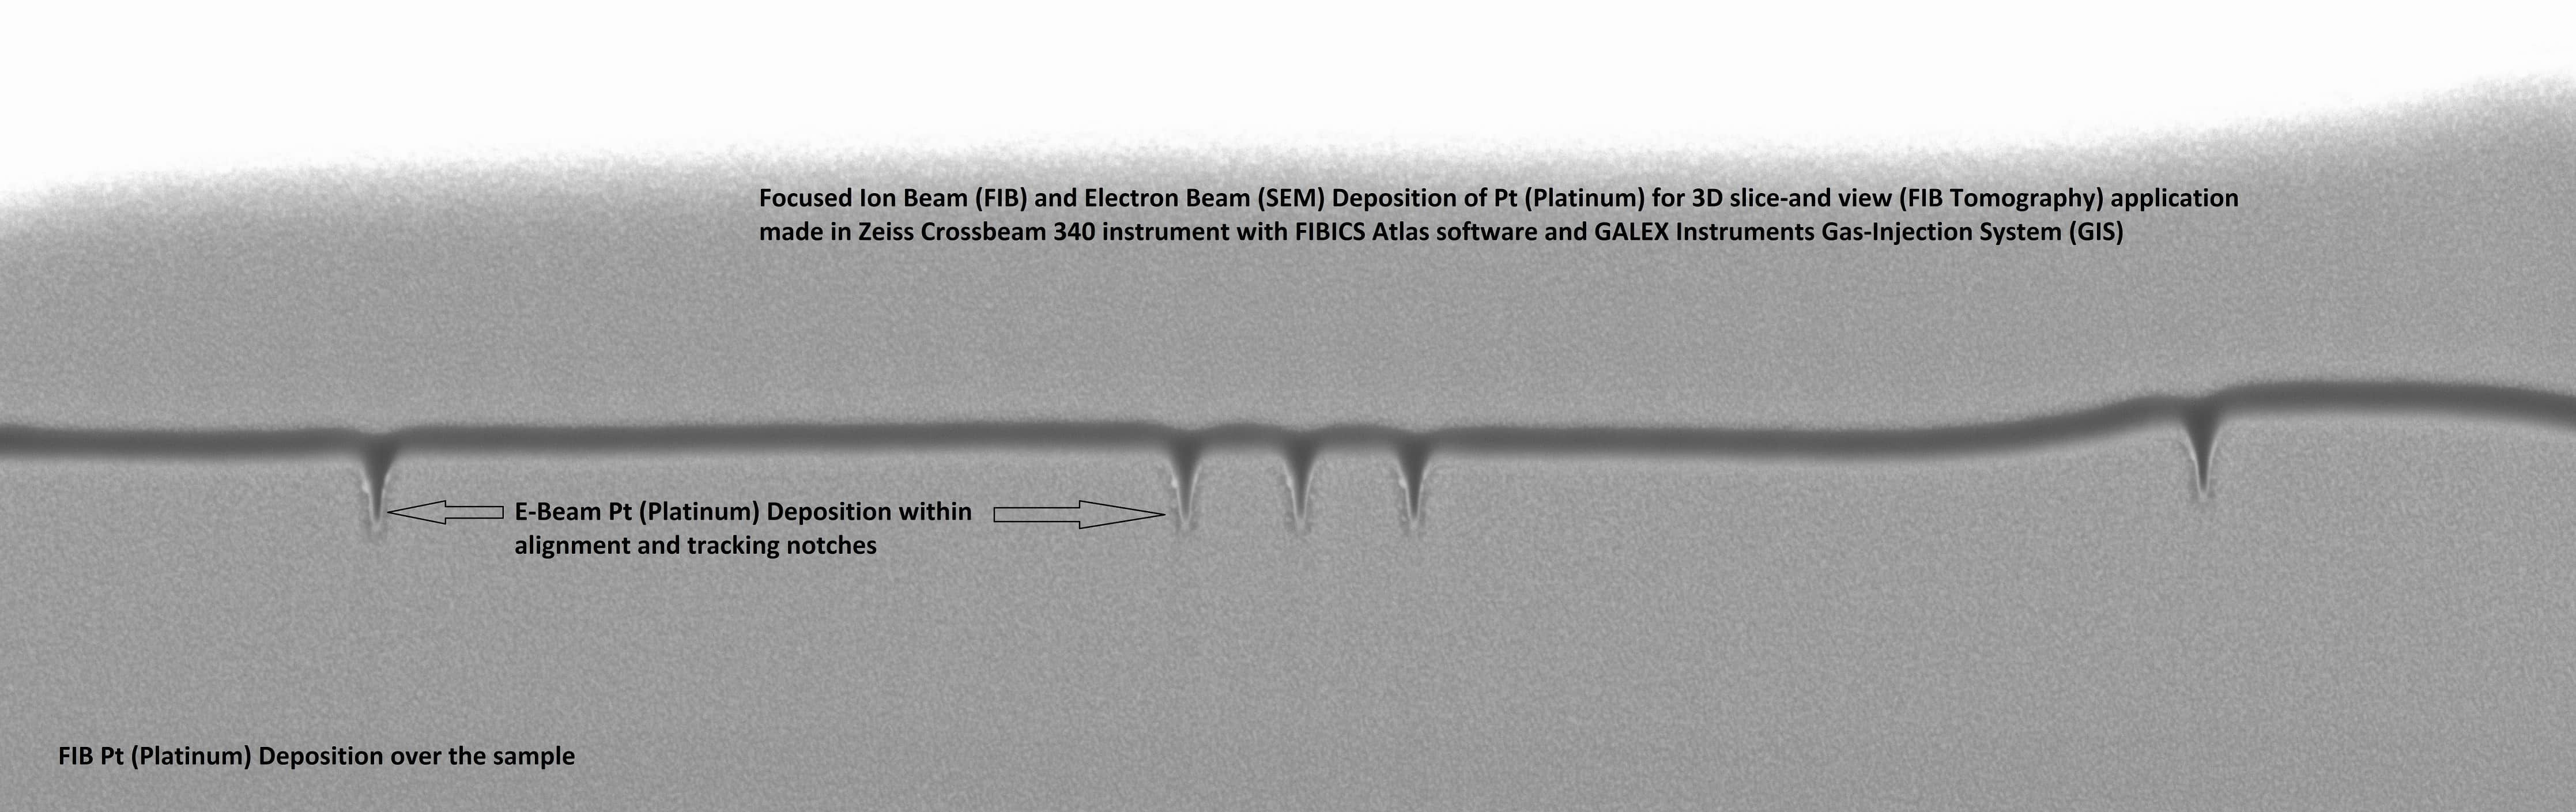 Gas-Injection System (GIS) for delivery deposition precursors in Focused Ion Beam (FIB) and dual-beam FIB/SEM